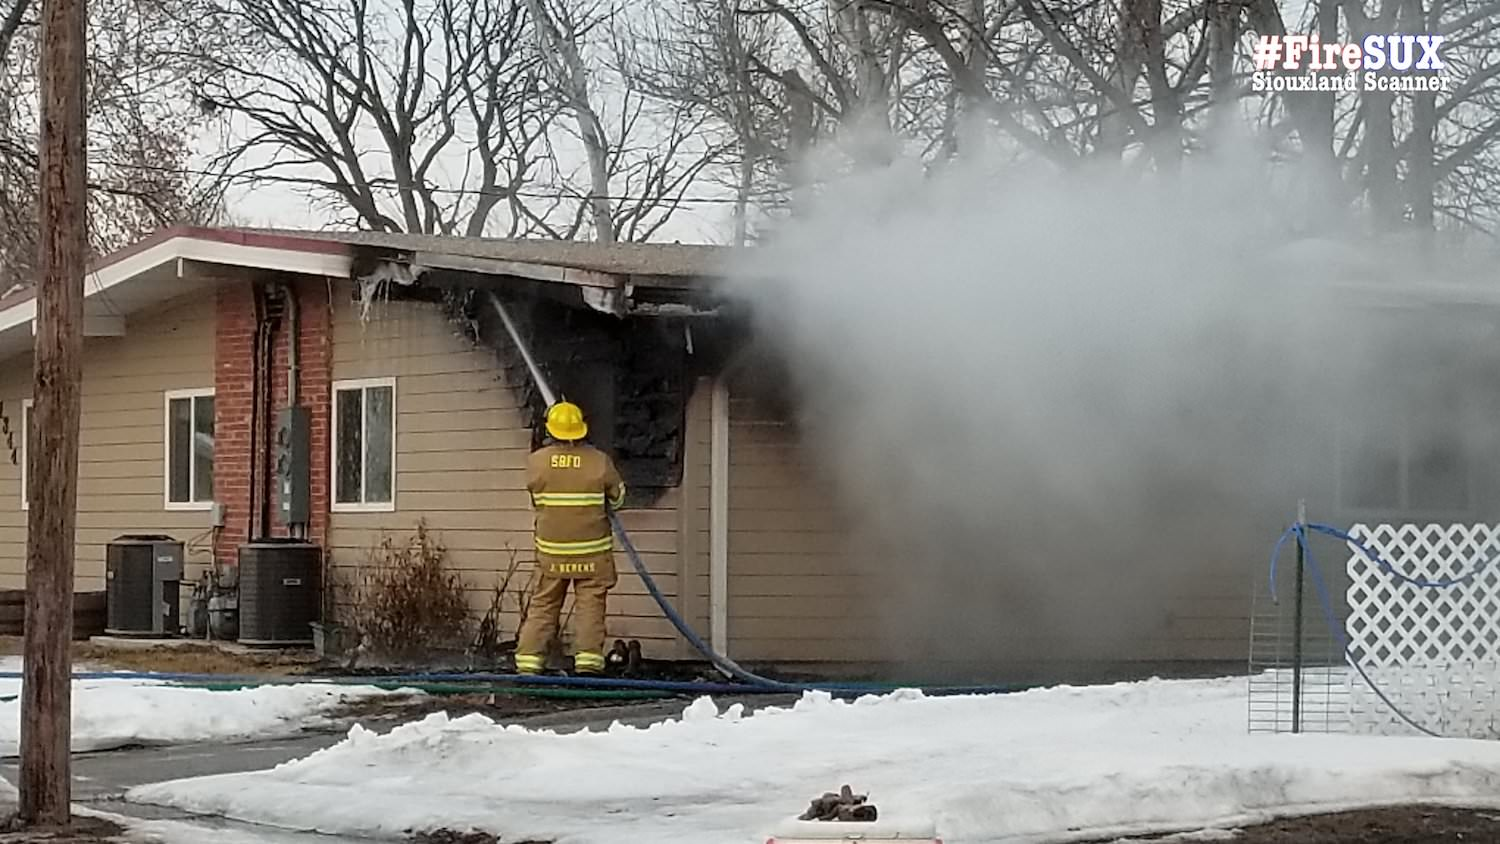 Sergeant Bluff Duplex fire intentionally set Wednesday police say